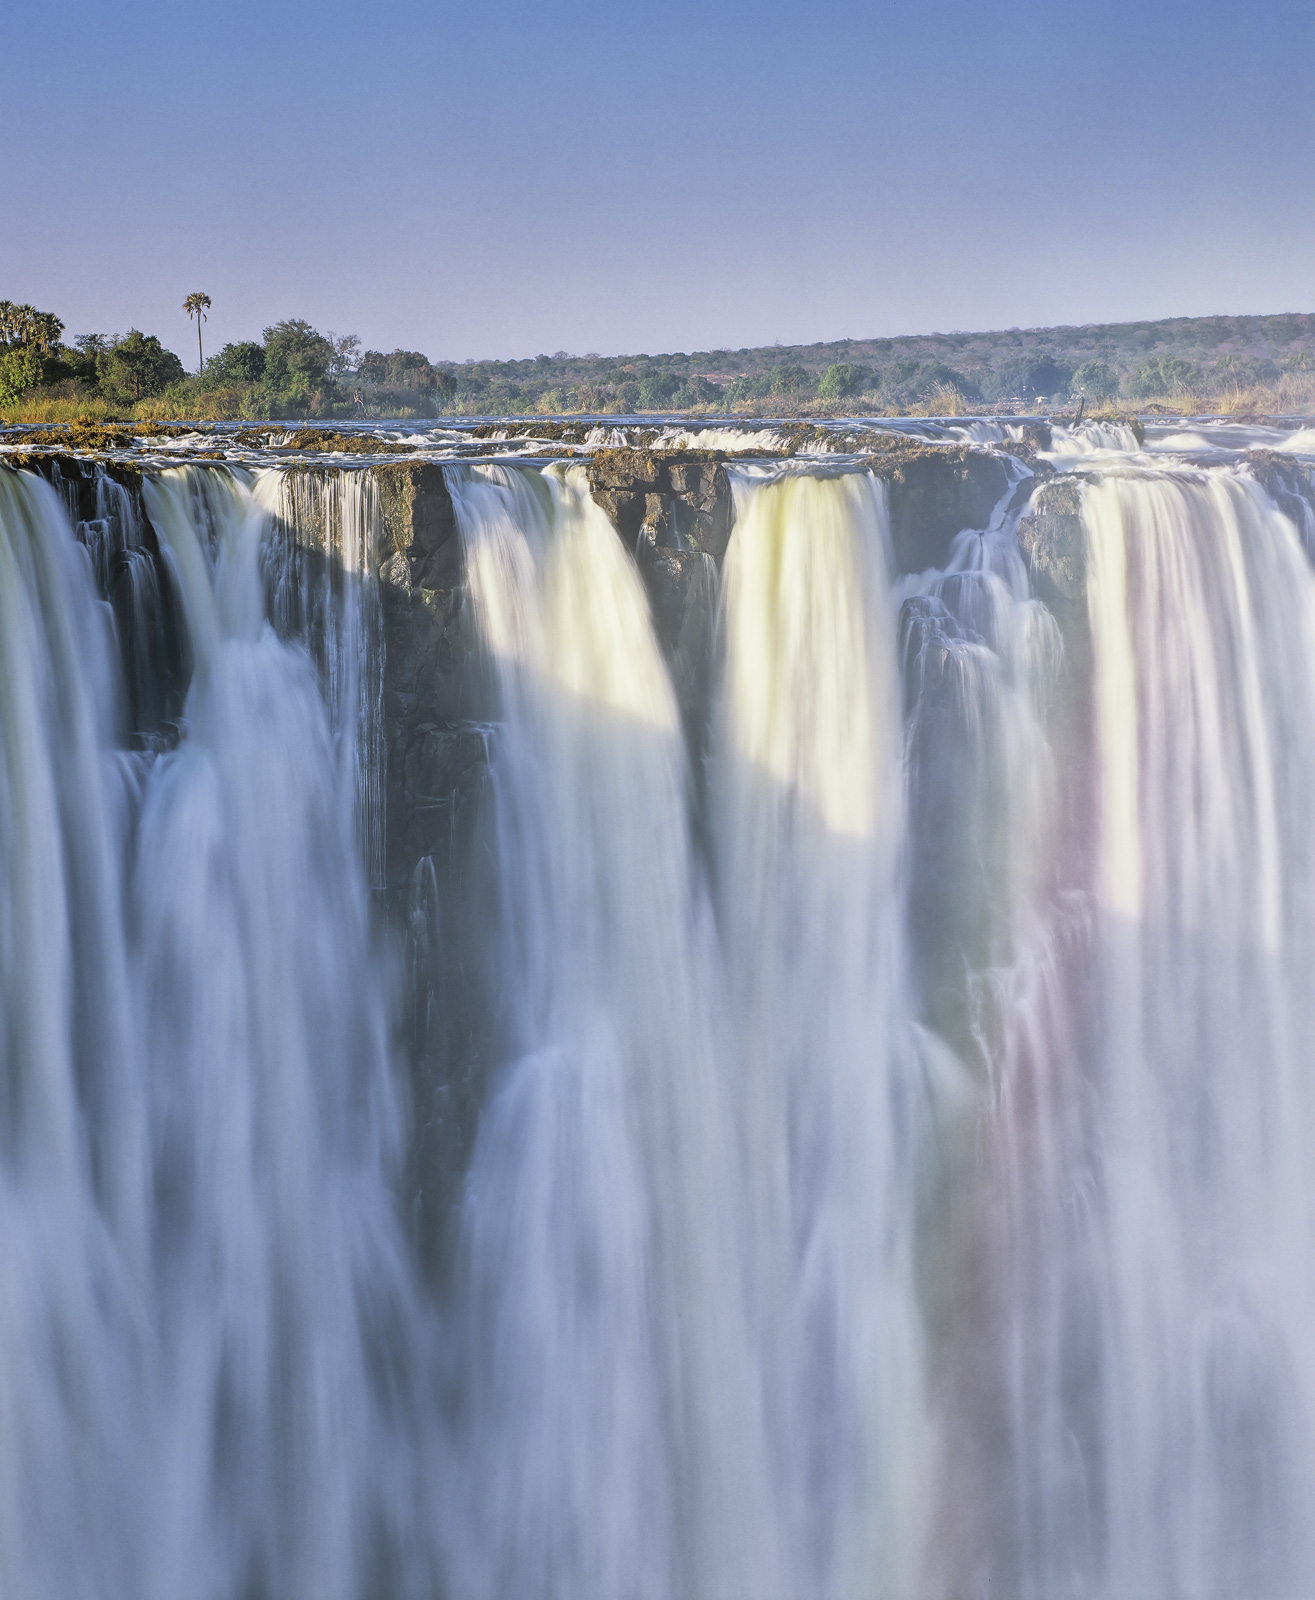 One of the Seven Wonders of the World the mighty Zambesi river plunges over a chasm a mile wide and 111 metres deep to form the...